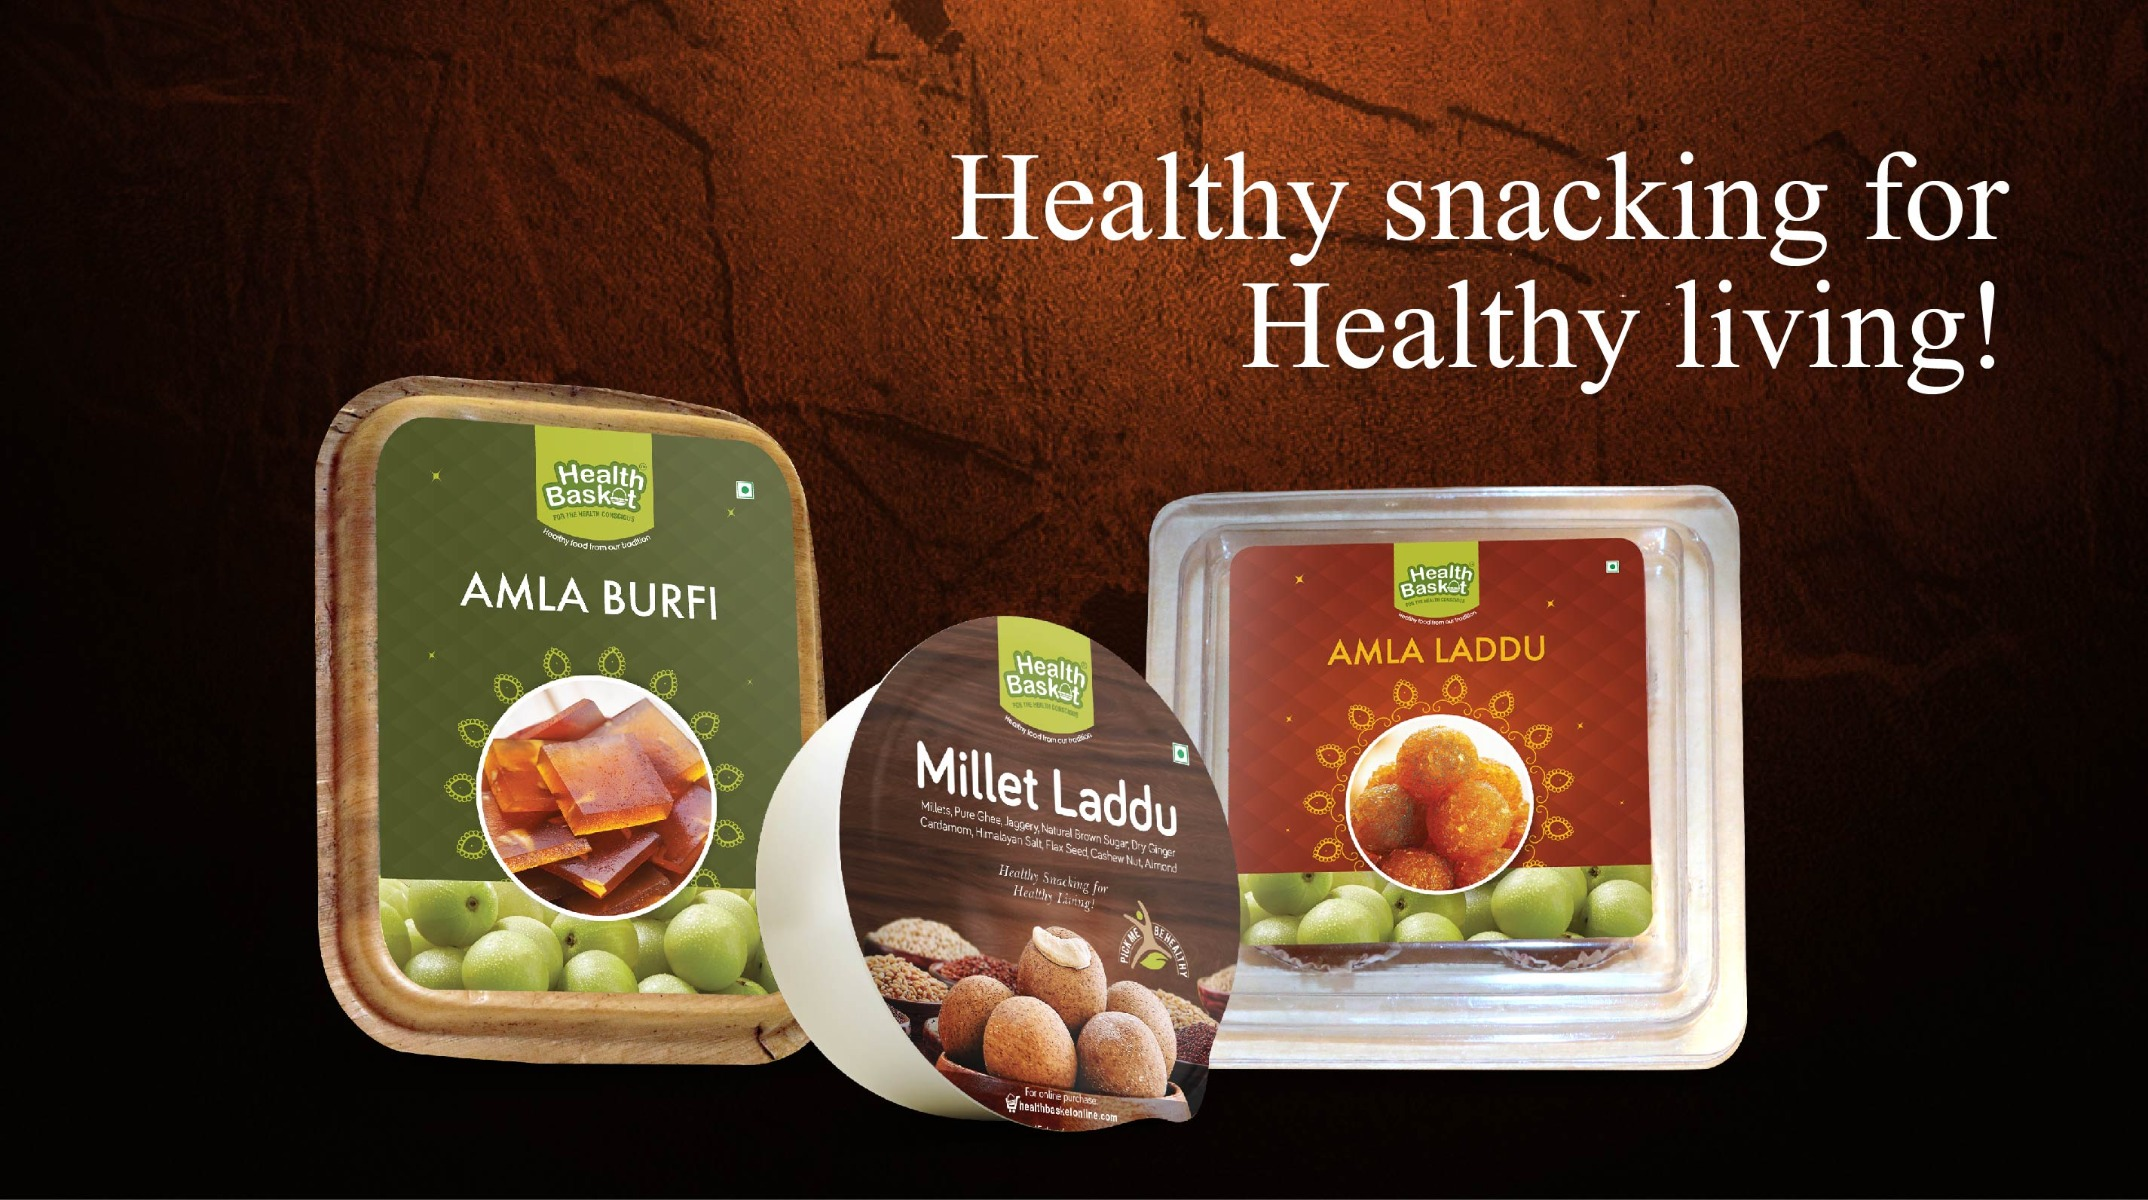 Health Basket Healthy Snacking for Healthy Livving